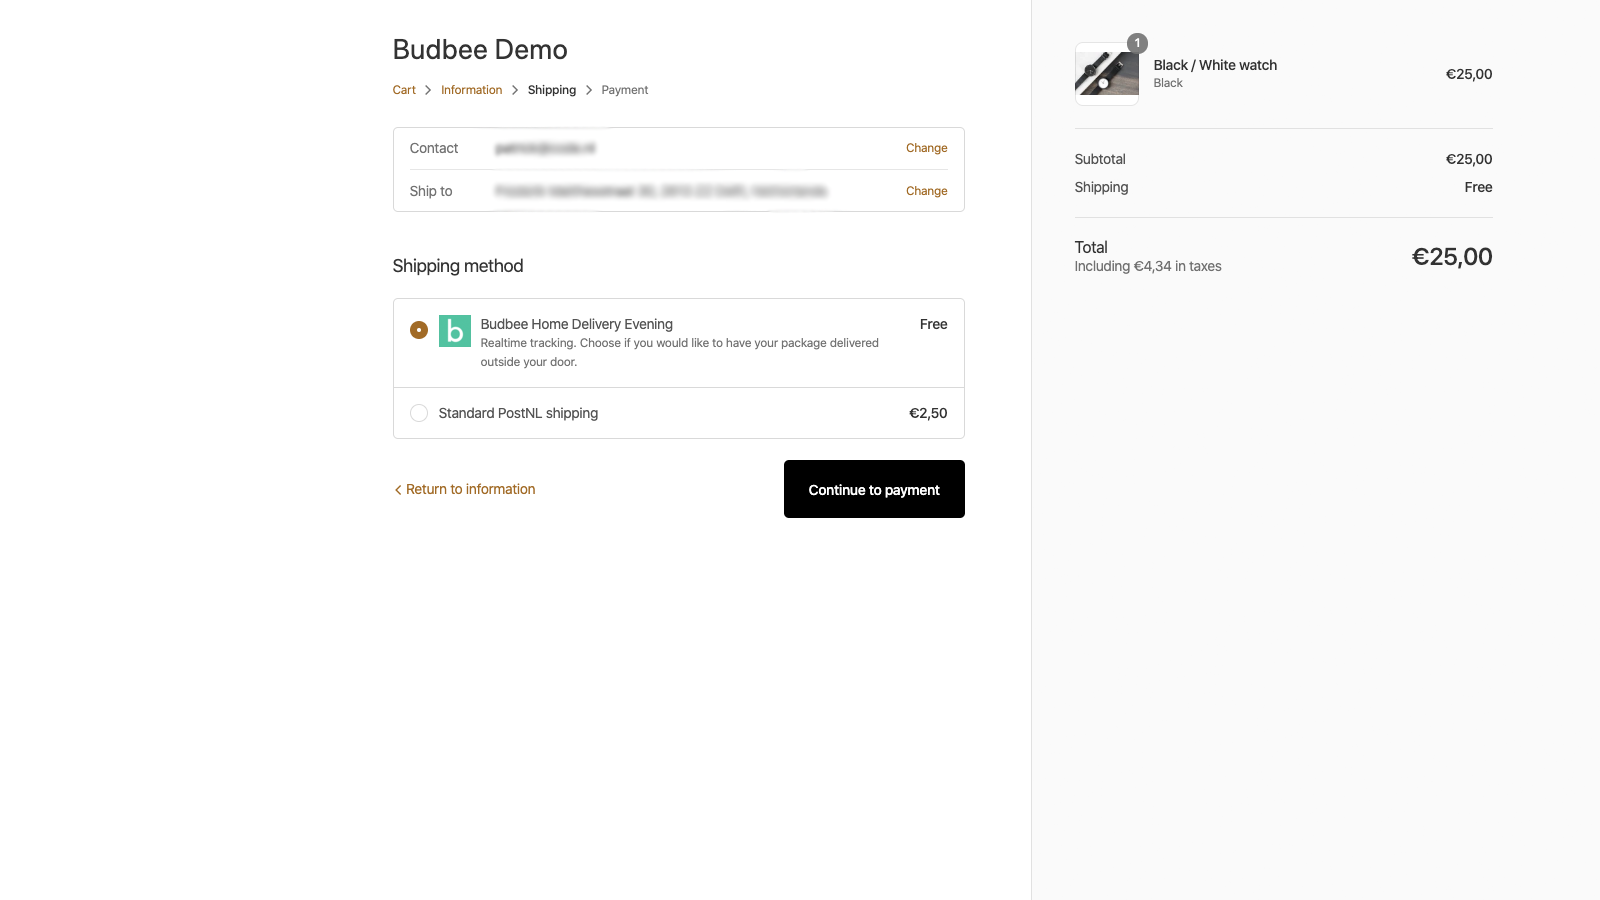 When in a Budbee supported area, the Budbee option is shown